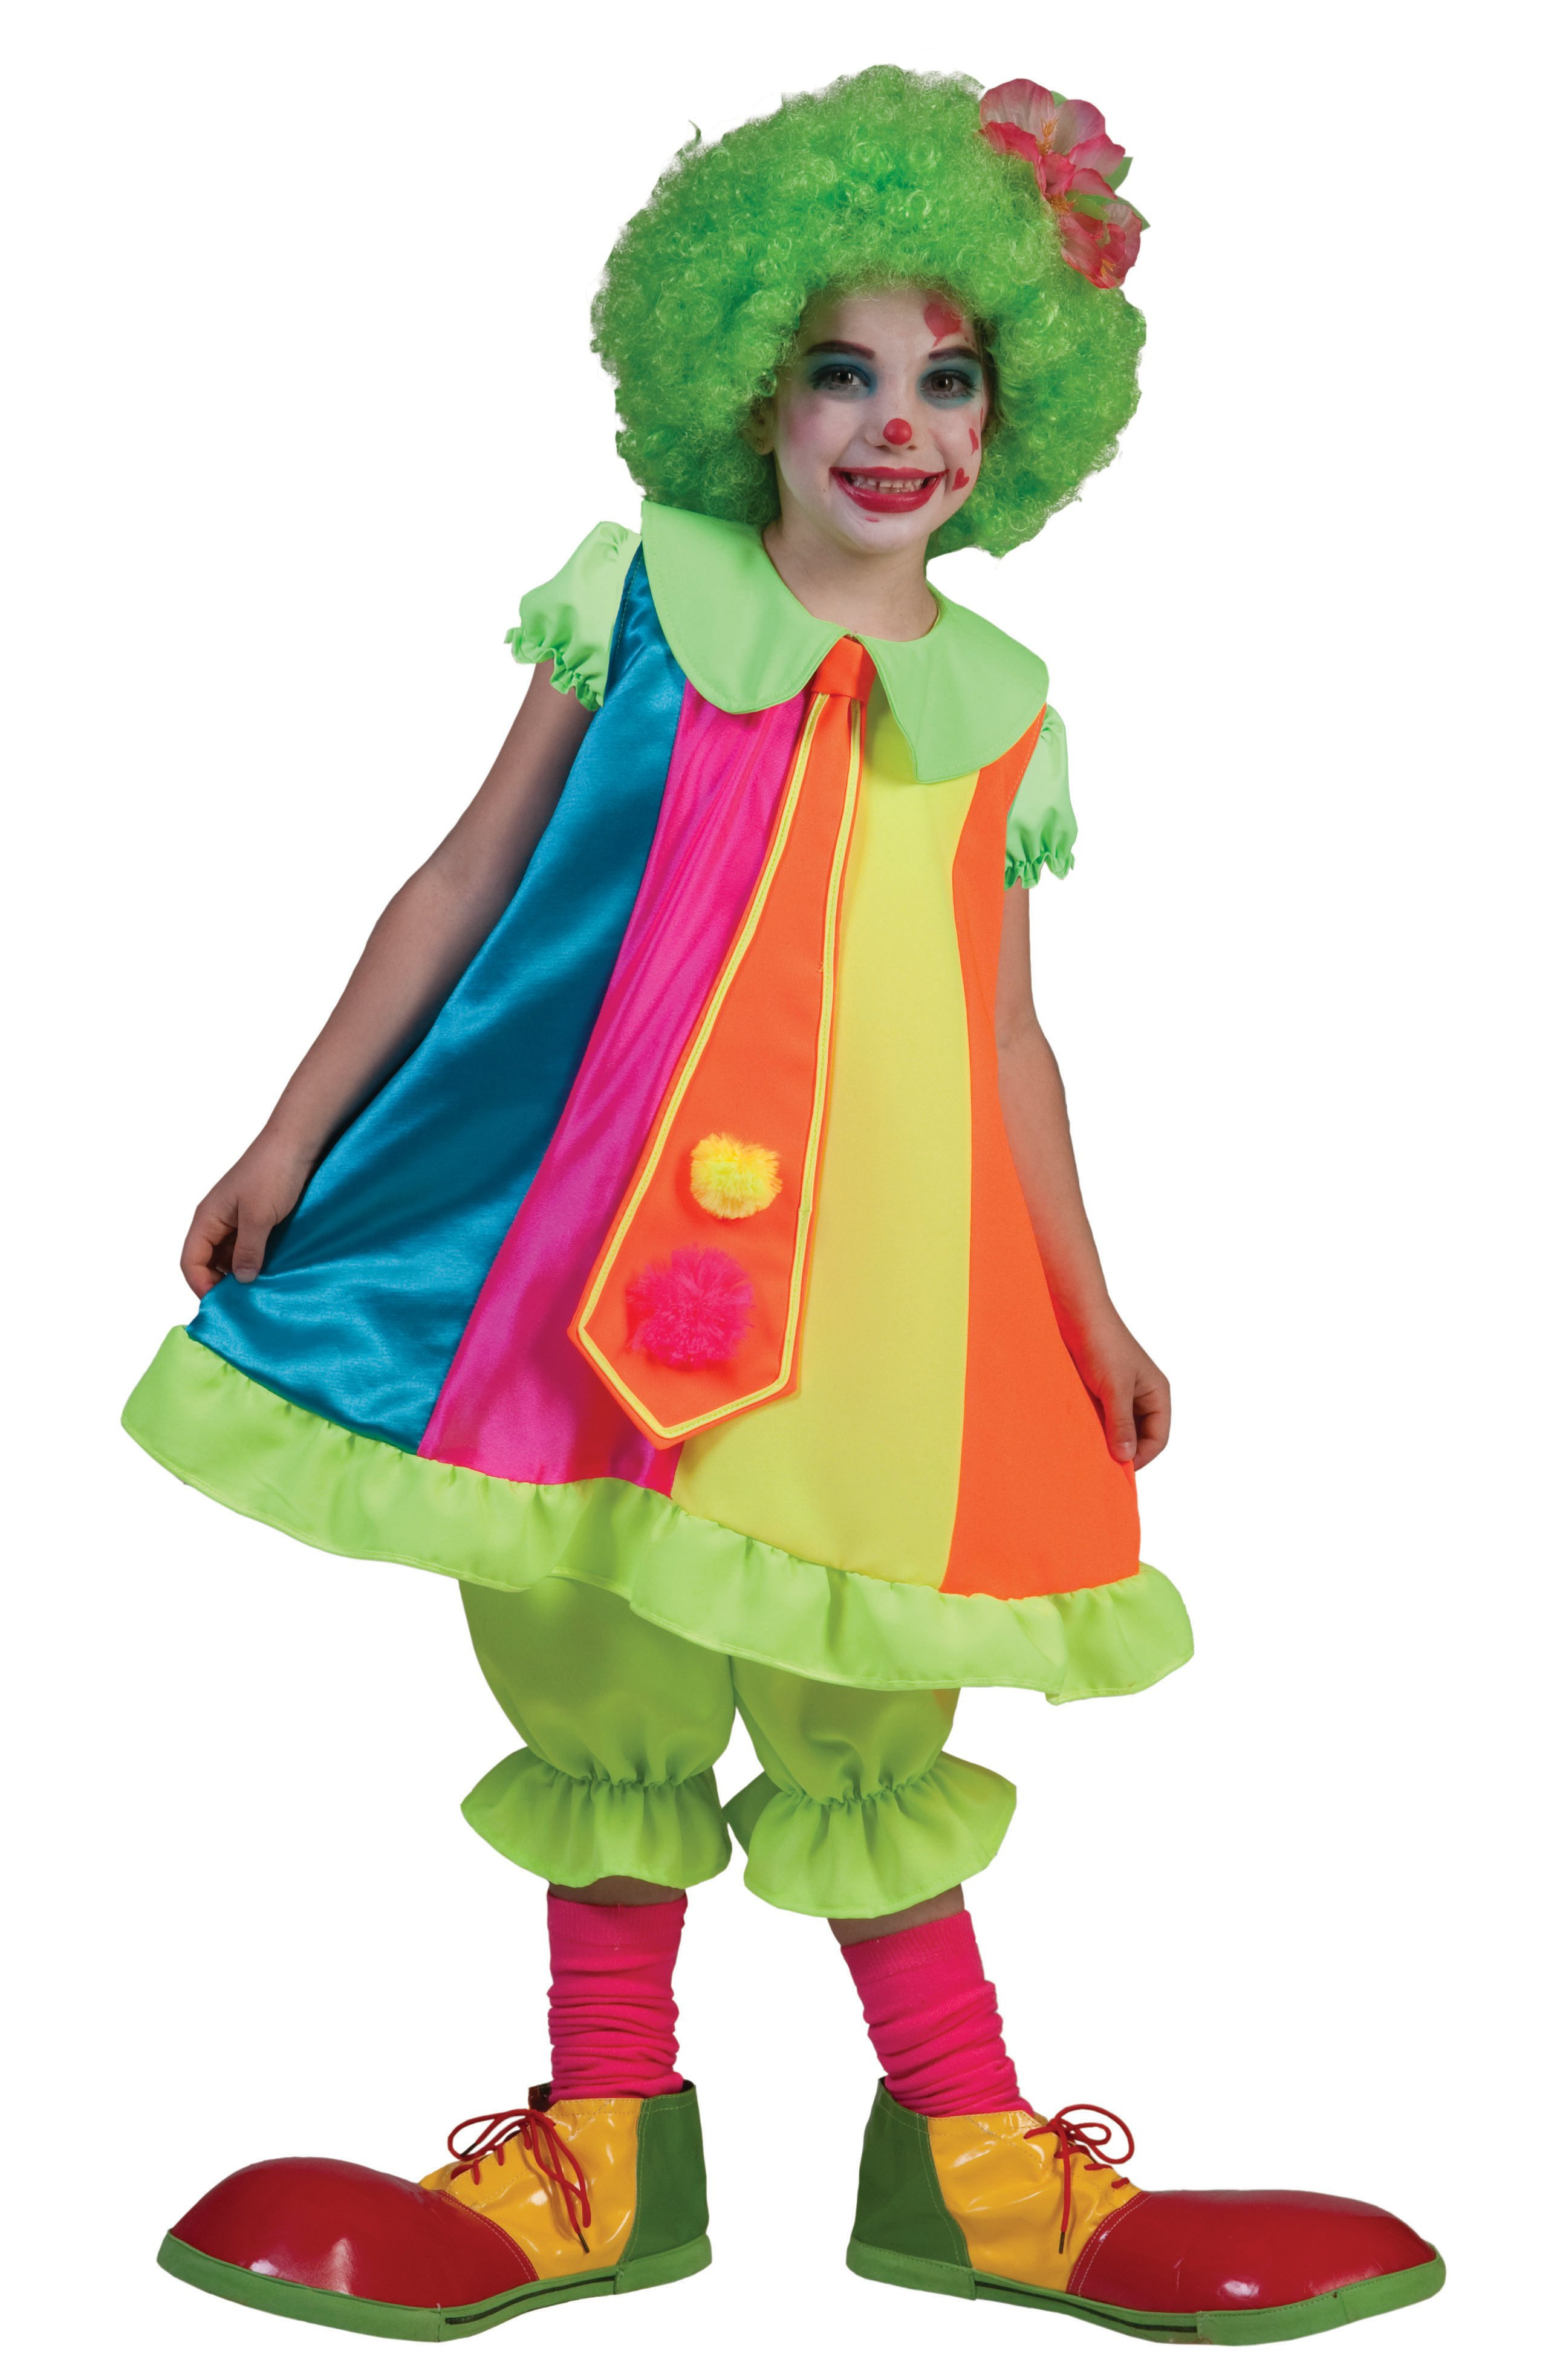 dainty clown kids costume mr costumes. Black Bedroom Furniture Sets. Home Design Ideas